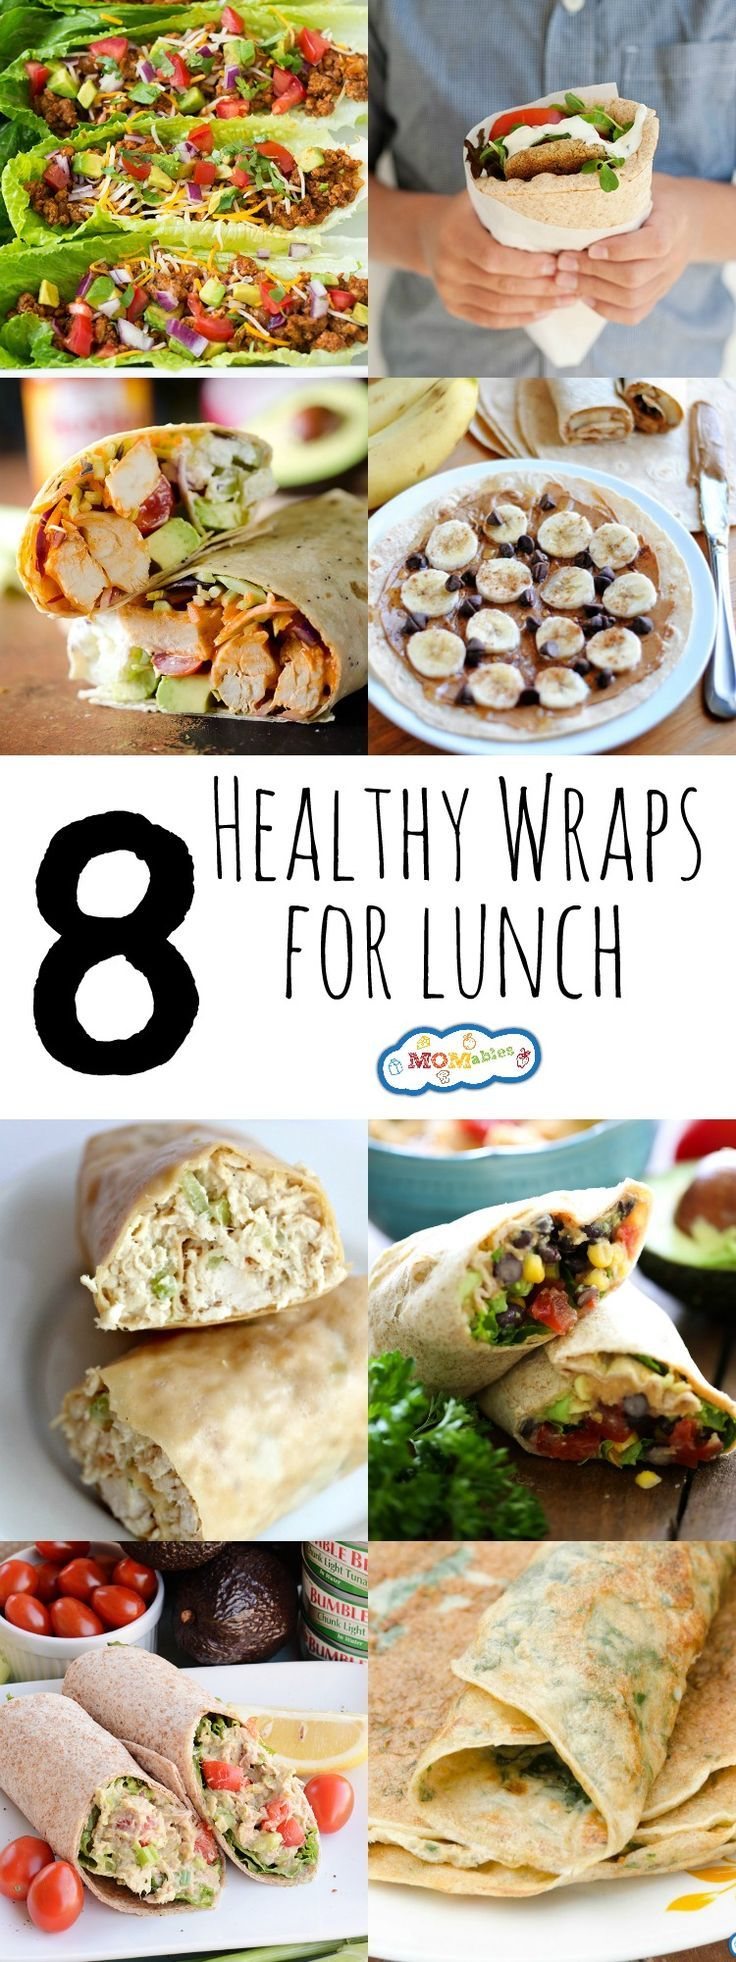 Are your kids tired of having sandwiches? Shake things up with these 8 healthy wraps for lunch! Filling, nutritious, and super tasty.